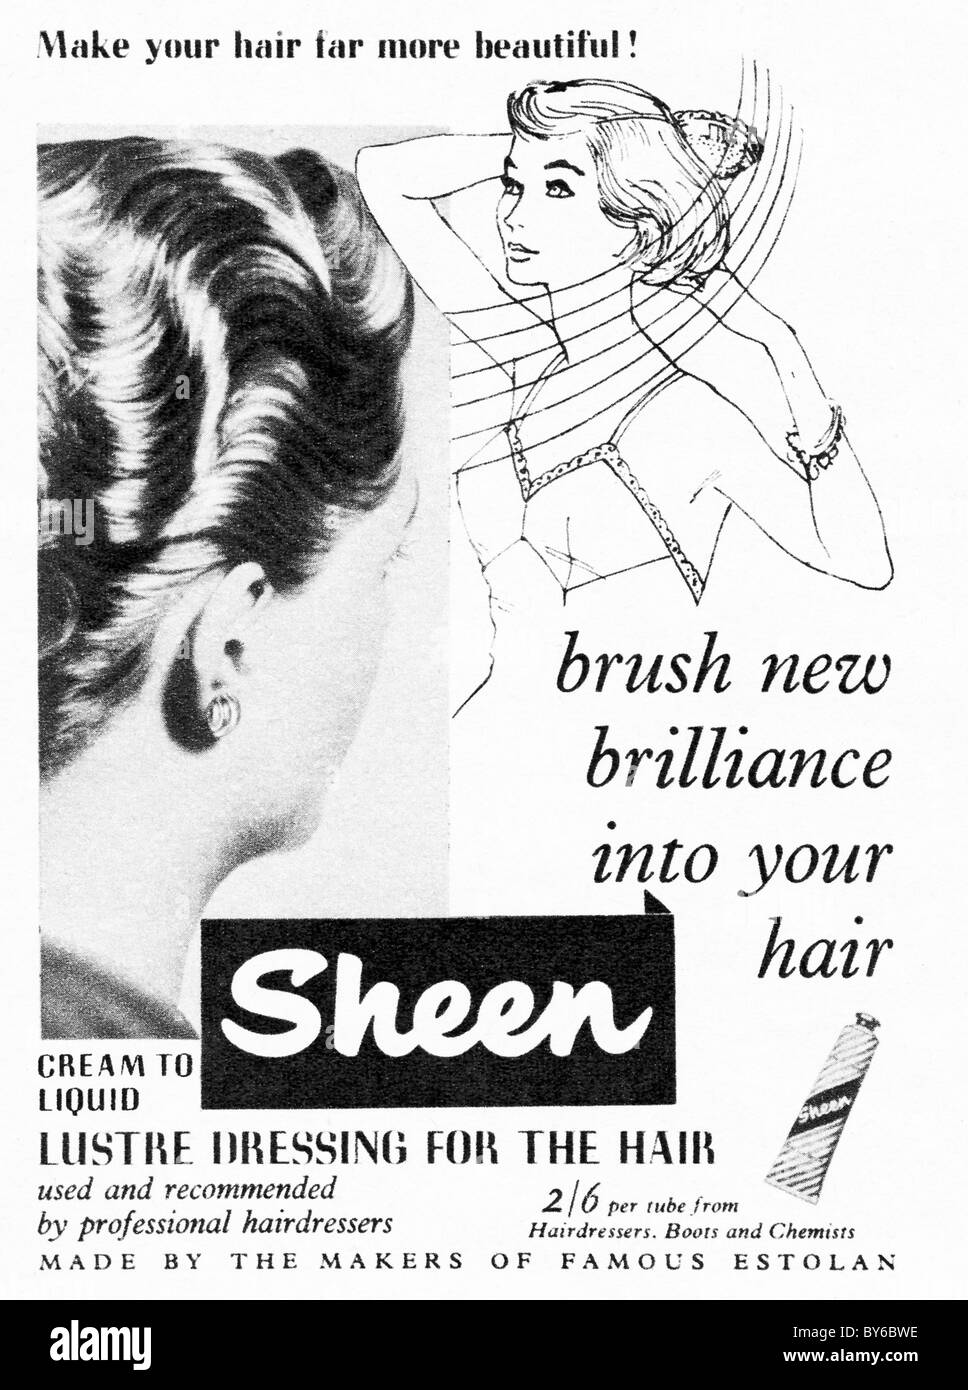 1950s advert in ladies fashion magazine for Sheen lustre dressing for the hair - Stock Image